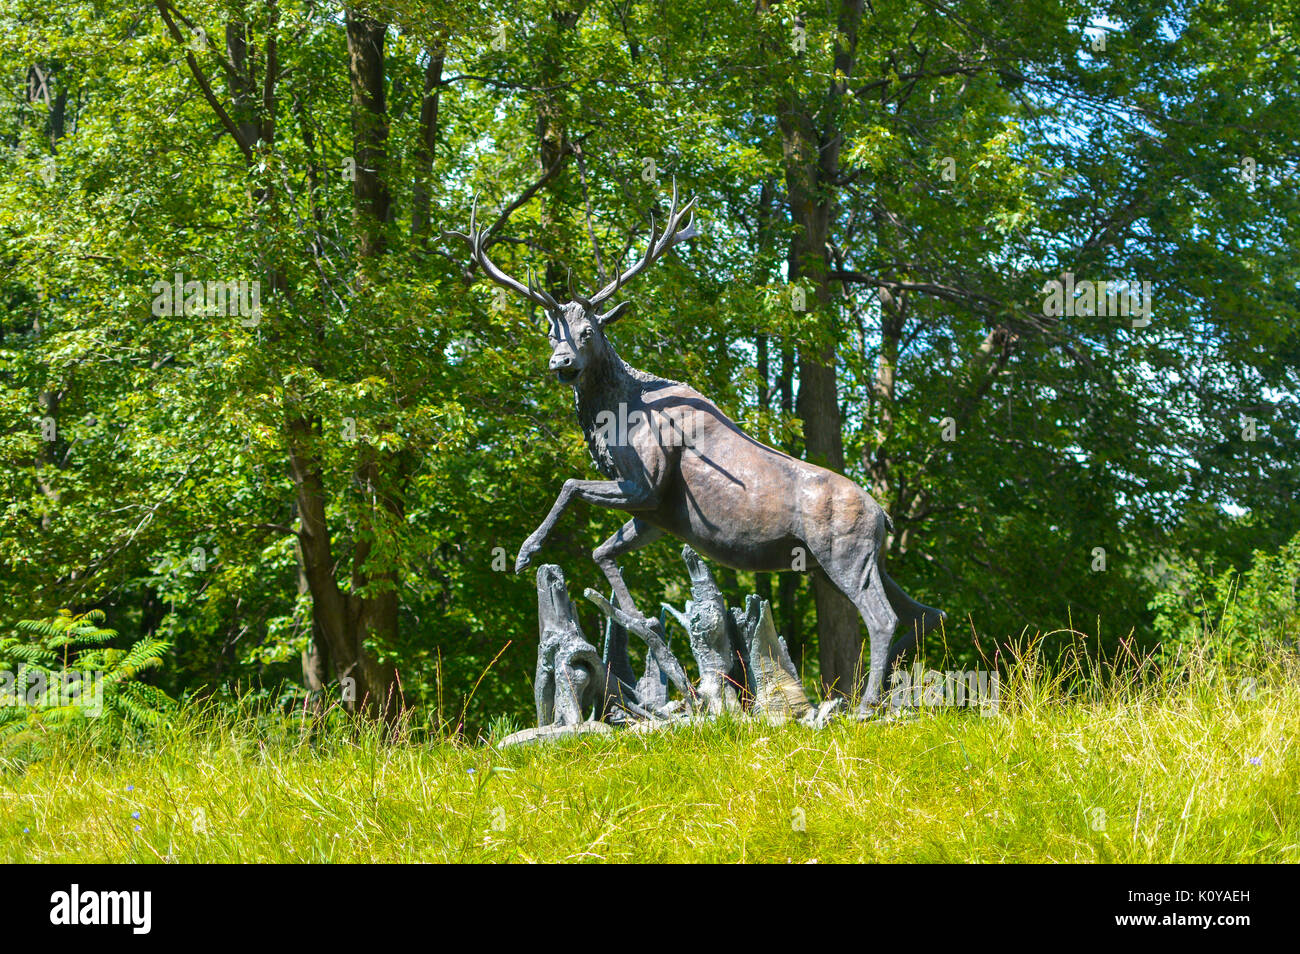 Montreal, Canada - August 16, 2017: Statue of the deer in the park of Cote Saint-Luc Stock Photo